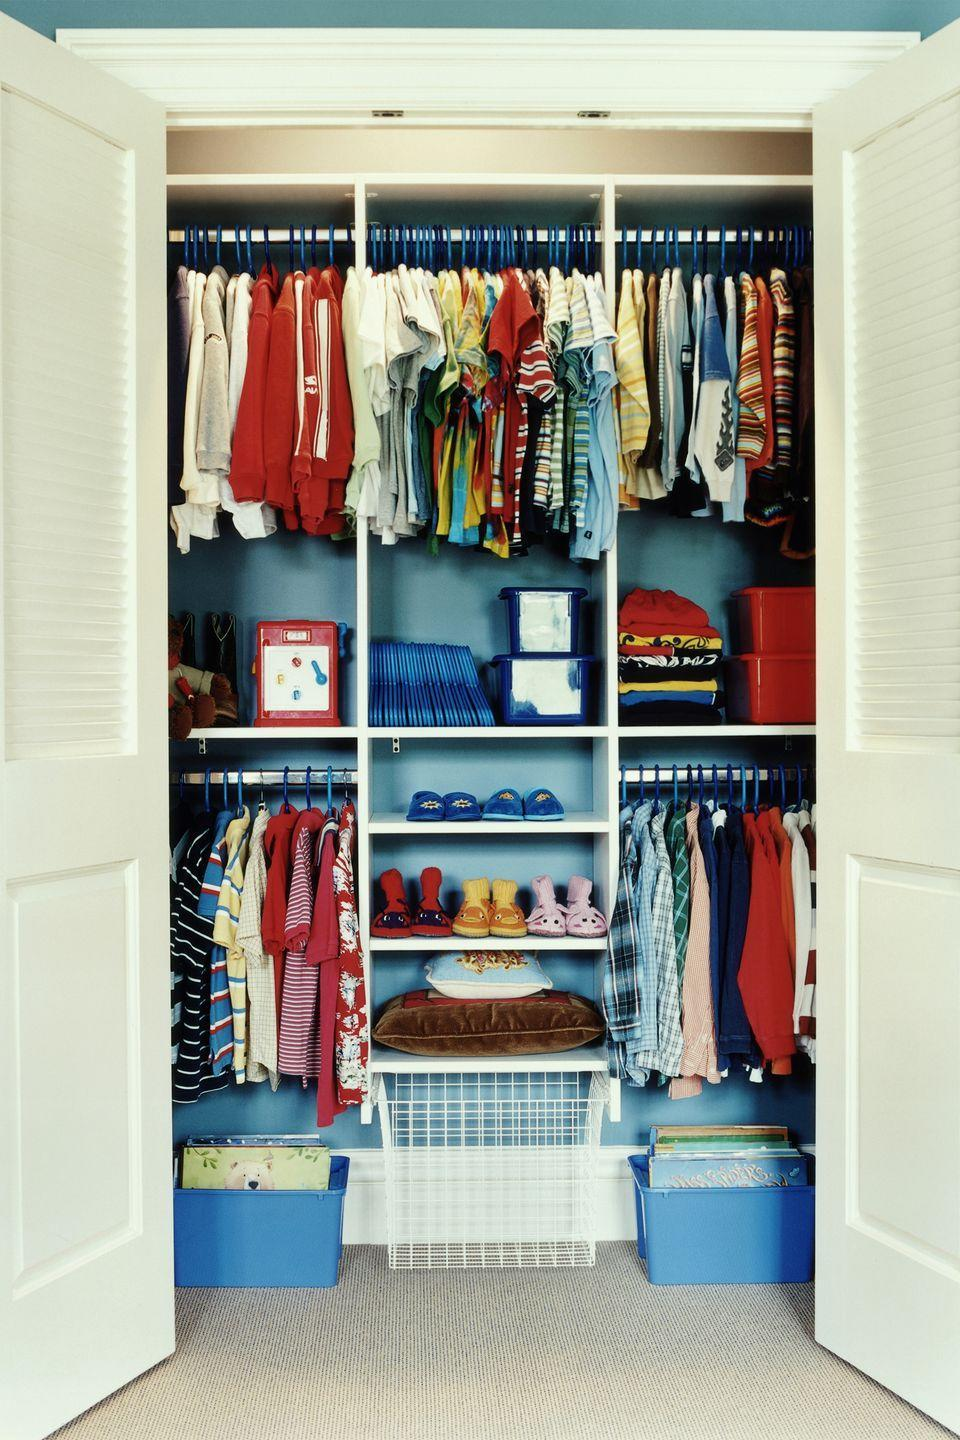 """<p>Go on and buy that closet organizer instead of just dreaming about it. It'll be well worth it.  </p><p><strong><a class=""""link rapid-noclick-resp"""" href=""""https://www.amazon.com/dp/B0798DTVL8/ref=dp_prsubs_1?tag=syn-yahoo-20&ascsubtag=%5Bartid%7C10070.g.3310%5Bsrc%7Cyahoo-us"""" rel=""""nofollow noopener"""" target=""""_blank"""" data-ylk=""""slk:SHOP CLOSET ORGANIZERS"""">SHOP CLOSET ORGANIZERS</a></strong></p>"""